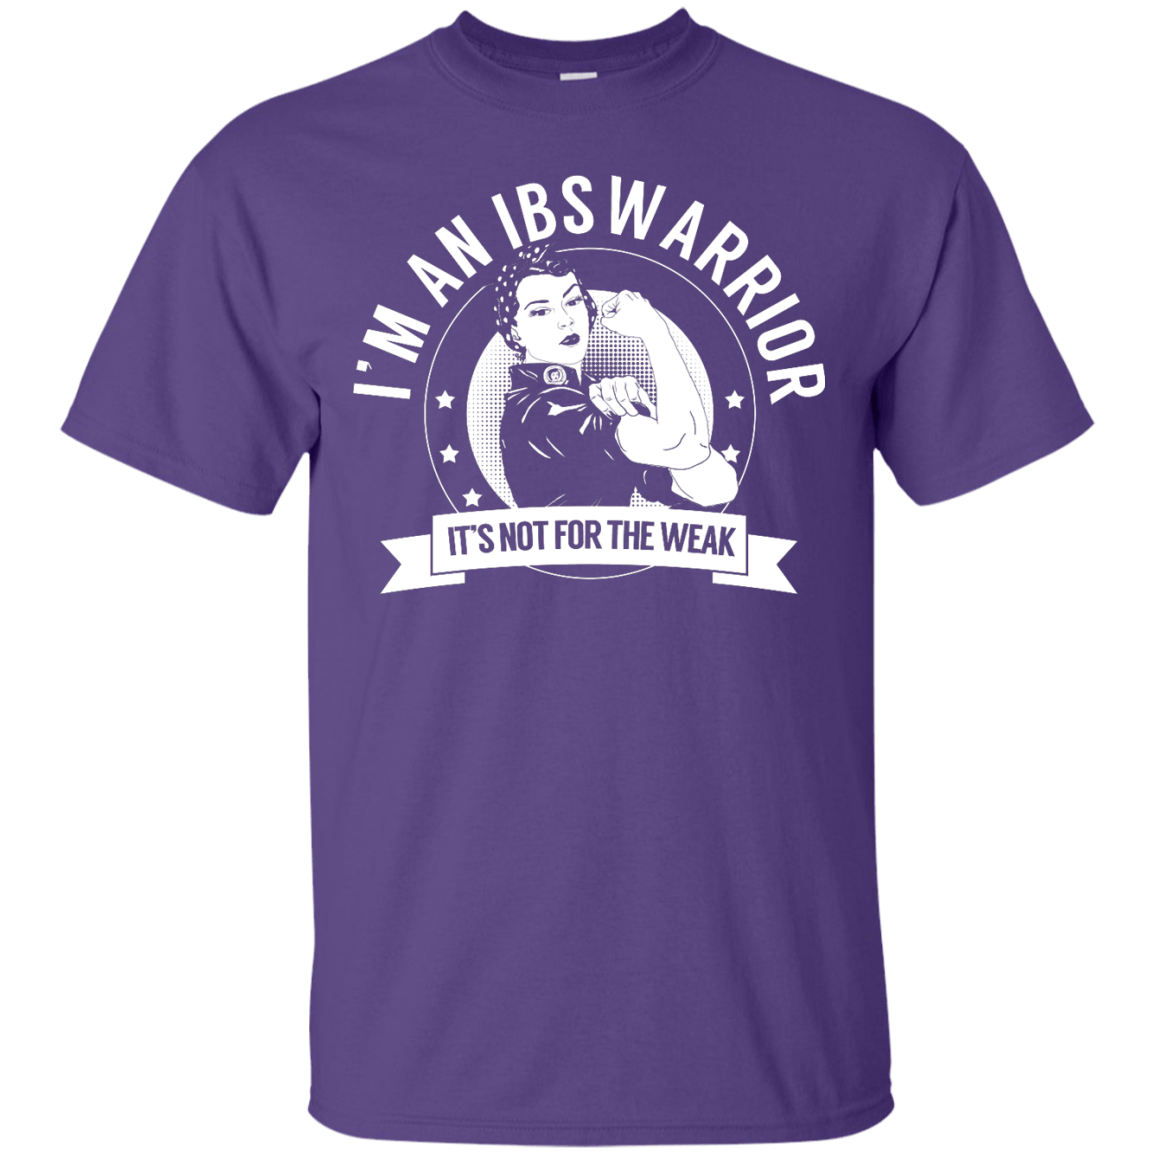 Short Sleeve - Irritable Bowel Syndrome - IBS Warrior Not For The Weak Unisex Shirt